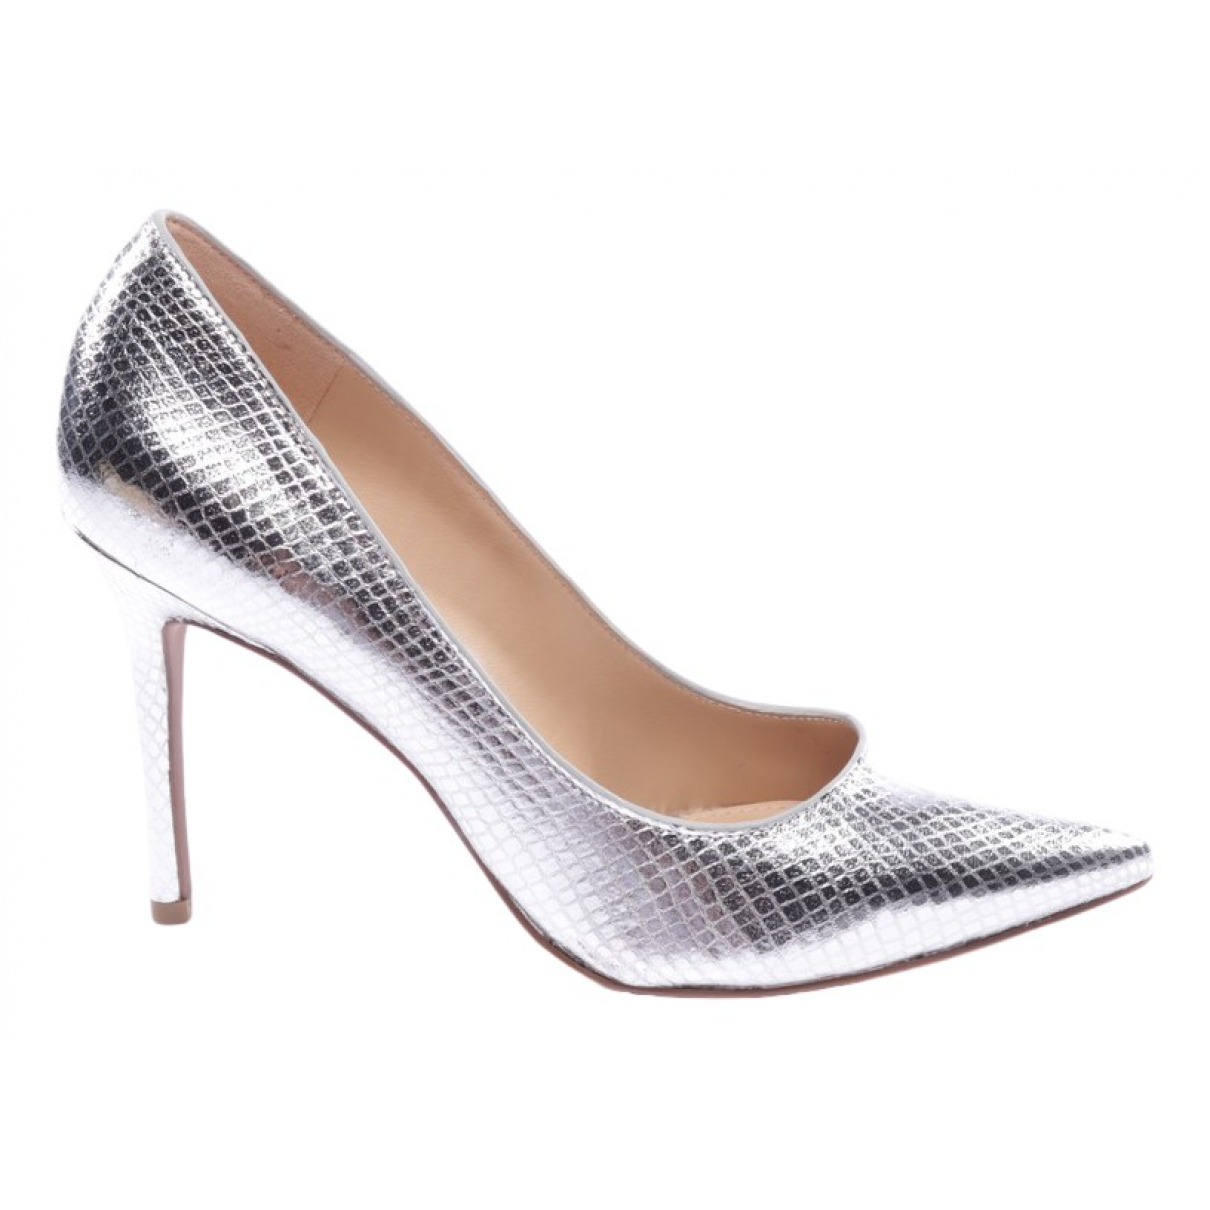 Michael Kors \N Metallic Leather Heels for Women 37.5 EU